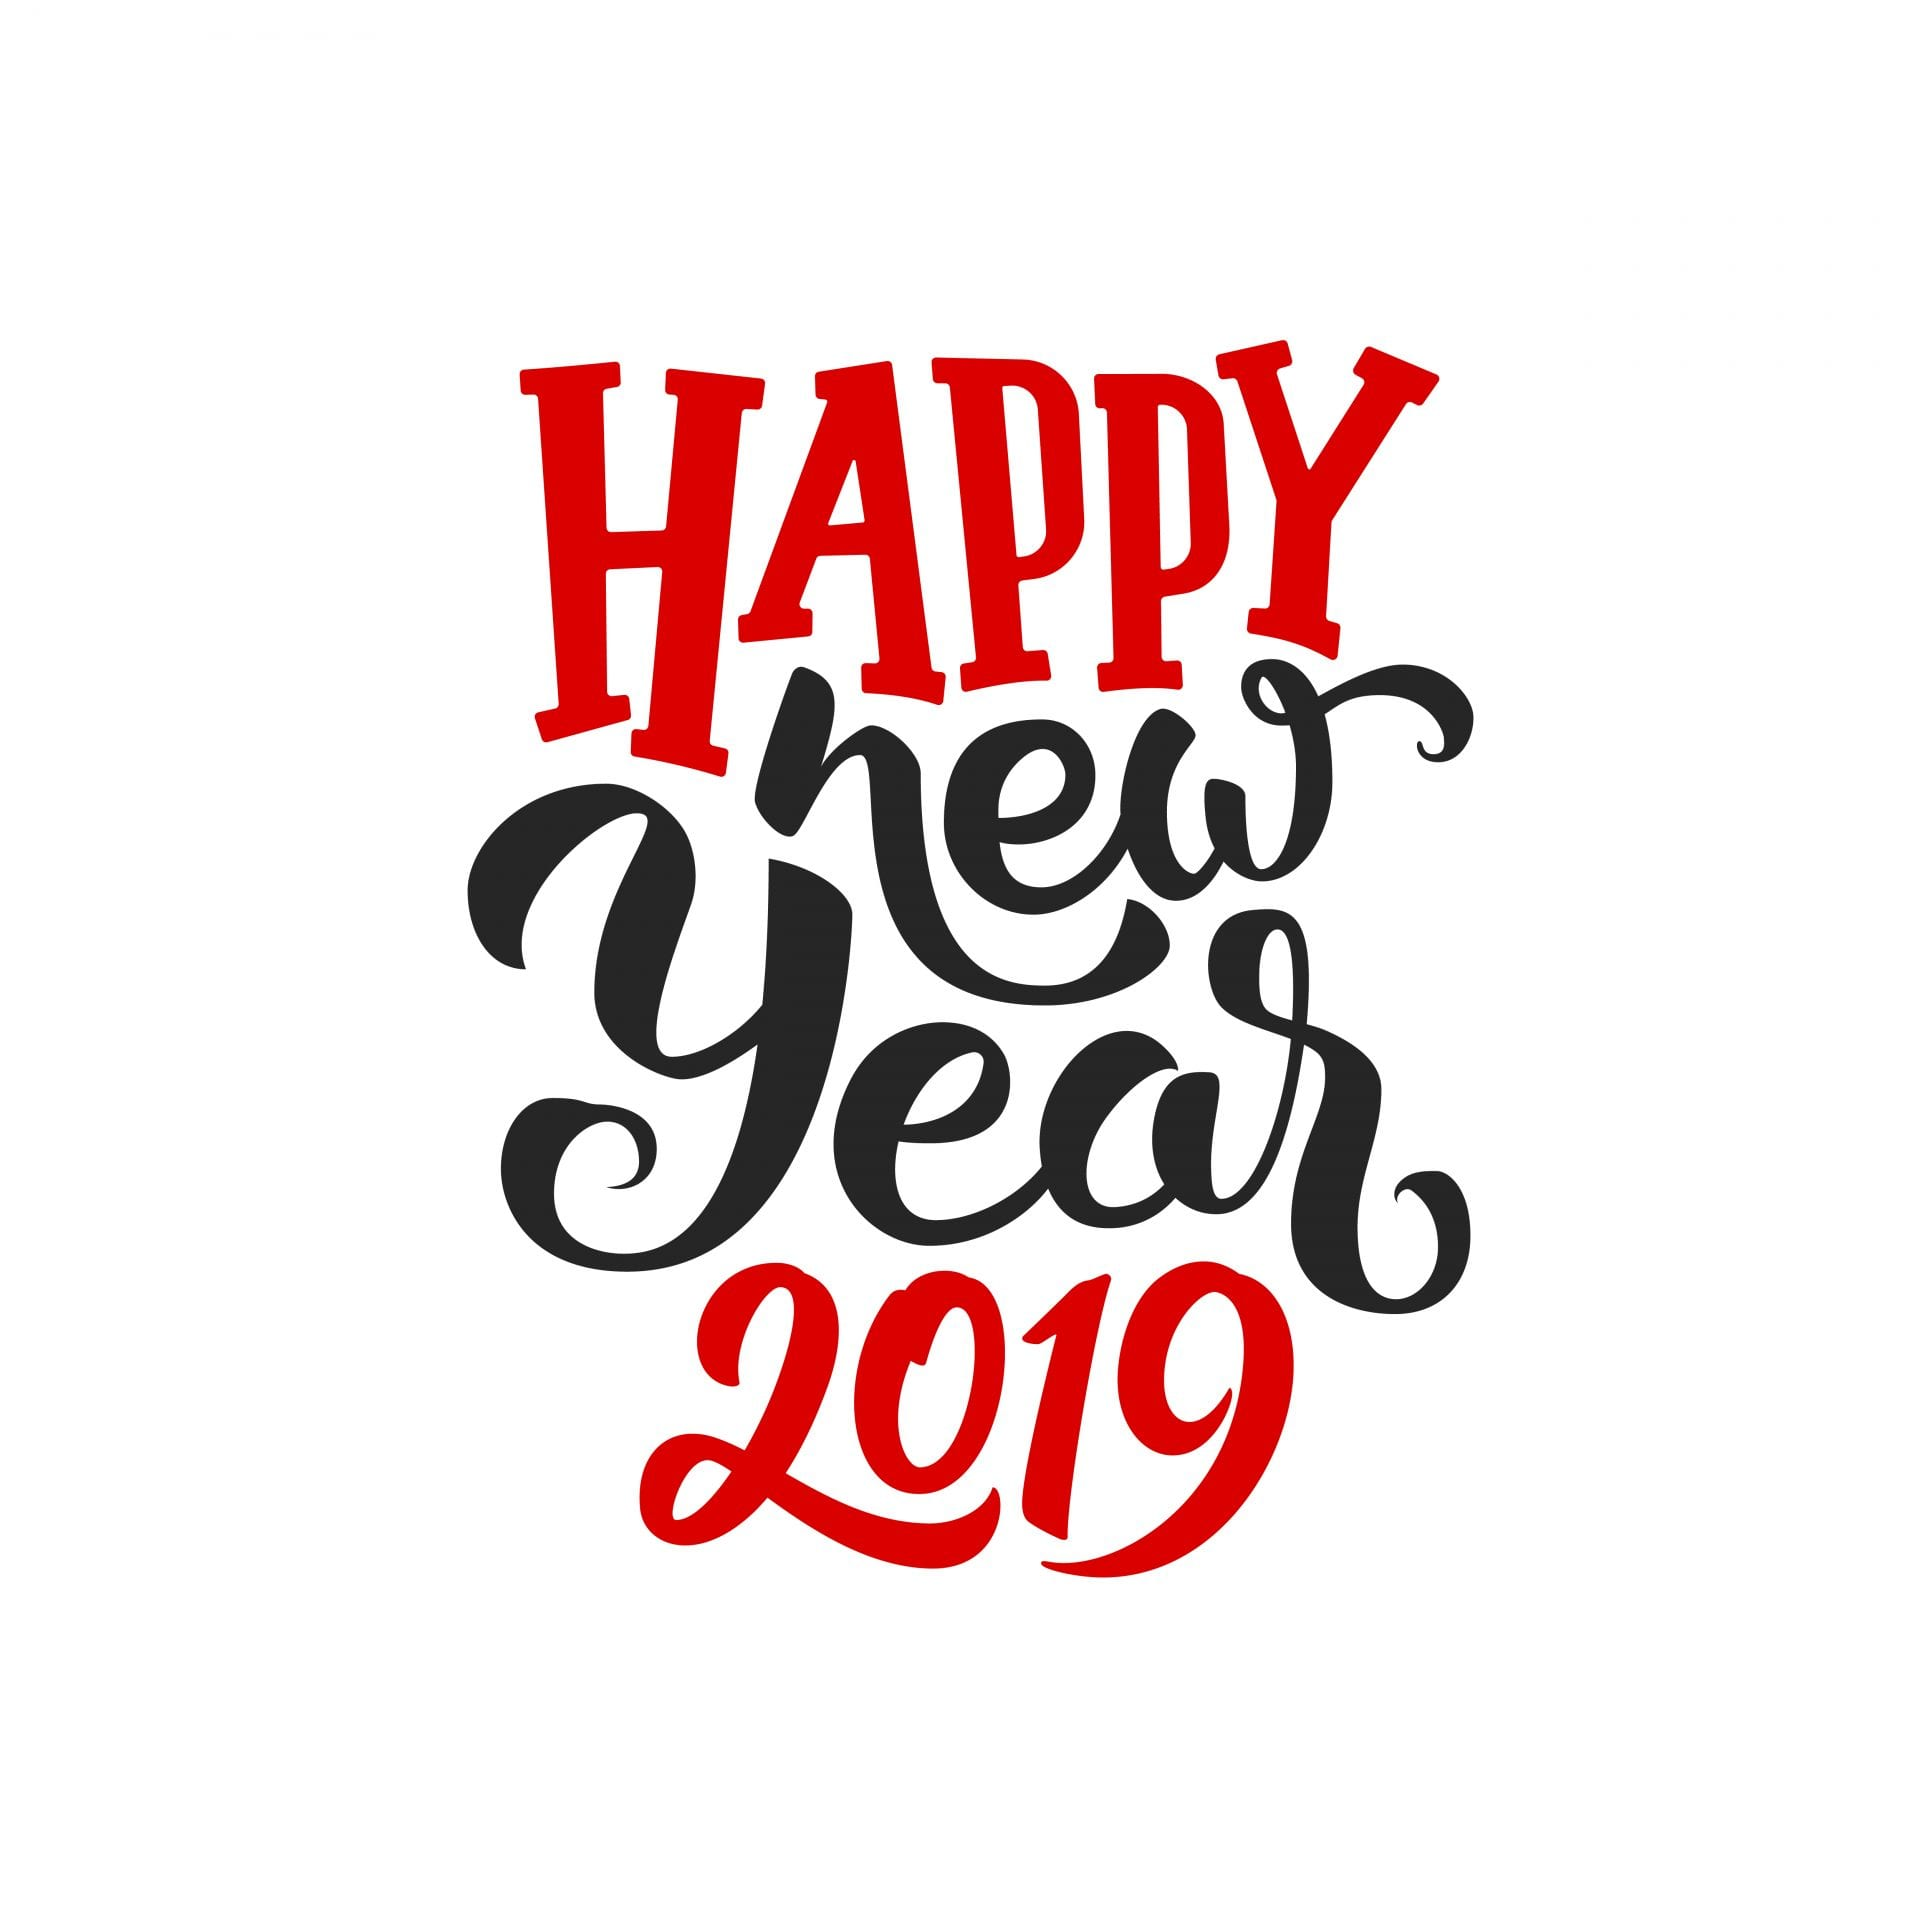 Happy New Year 2019 vector greeting card design